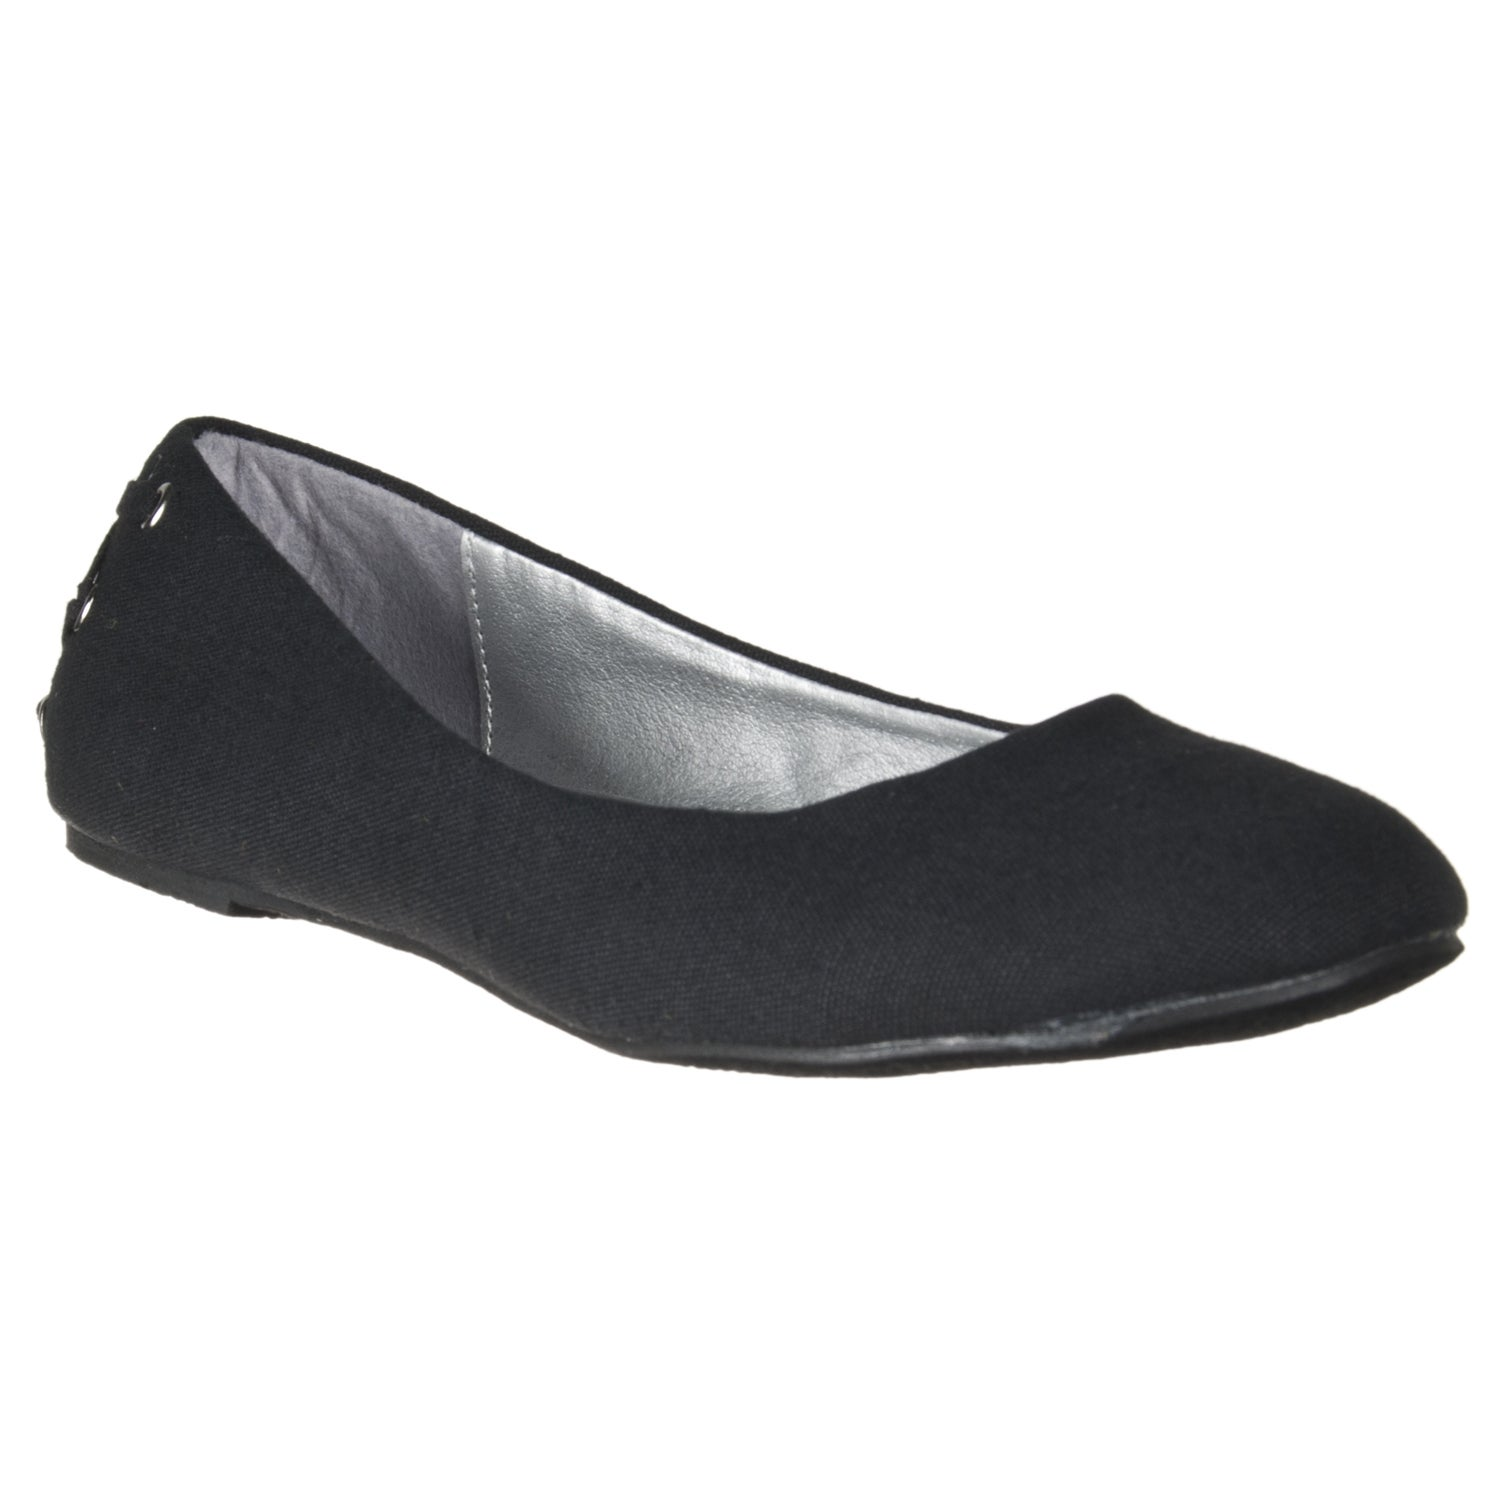 Riverberry Women's Black Canvas Lace-back Flats